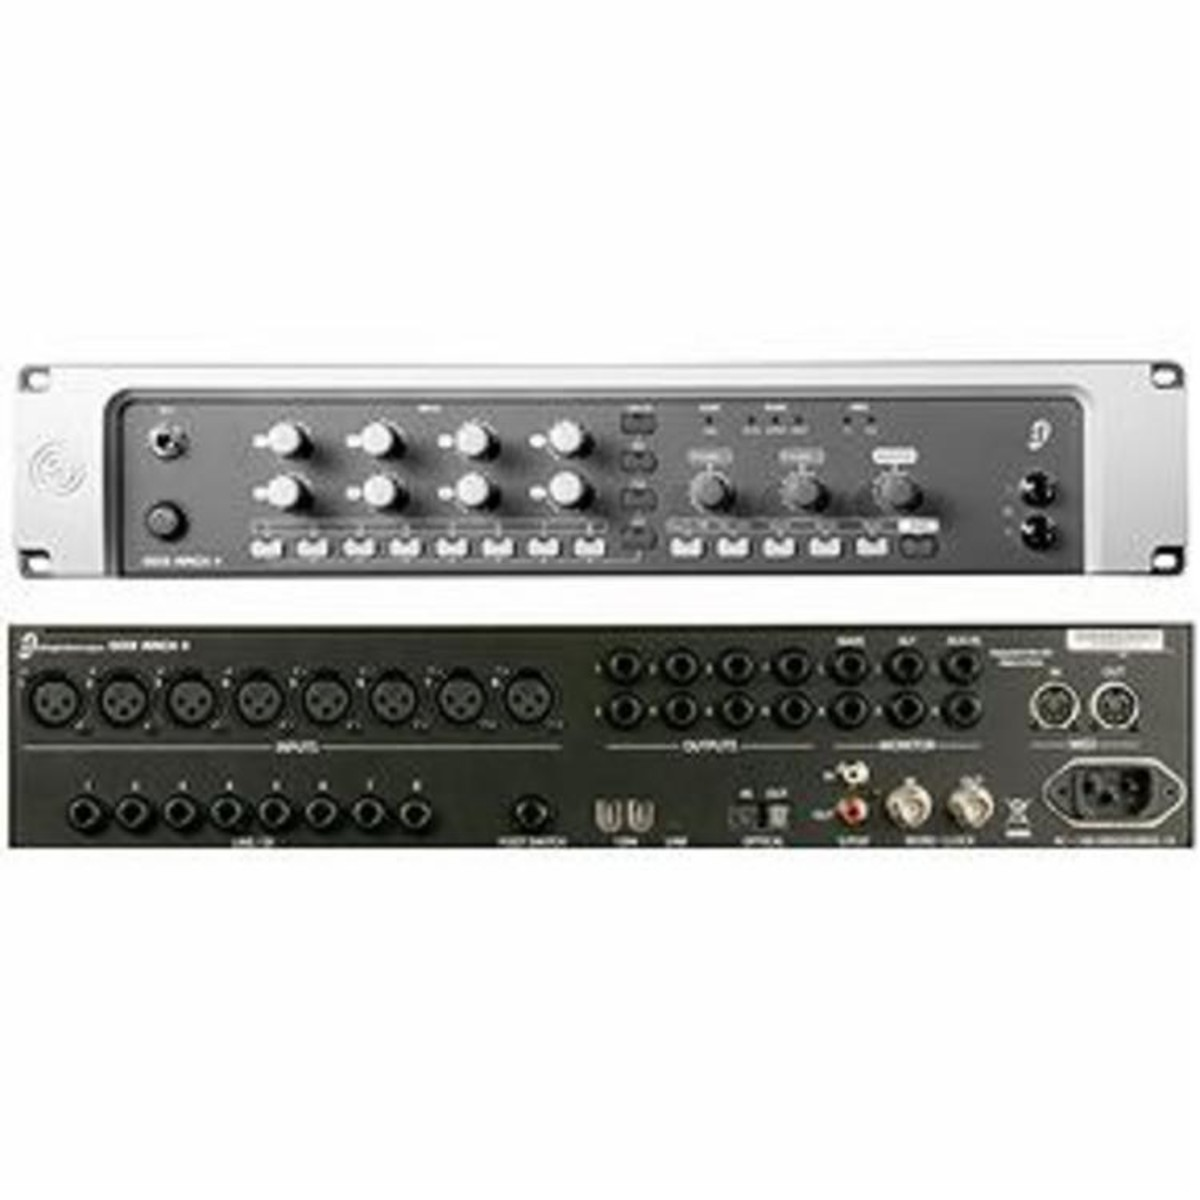 DRIVER FOR 003 DIGIDESIGN